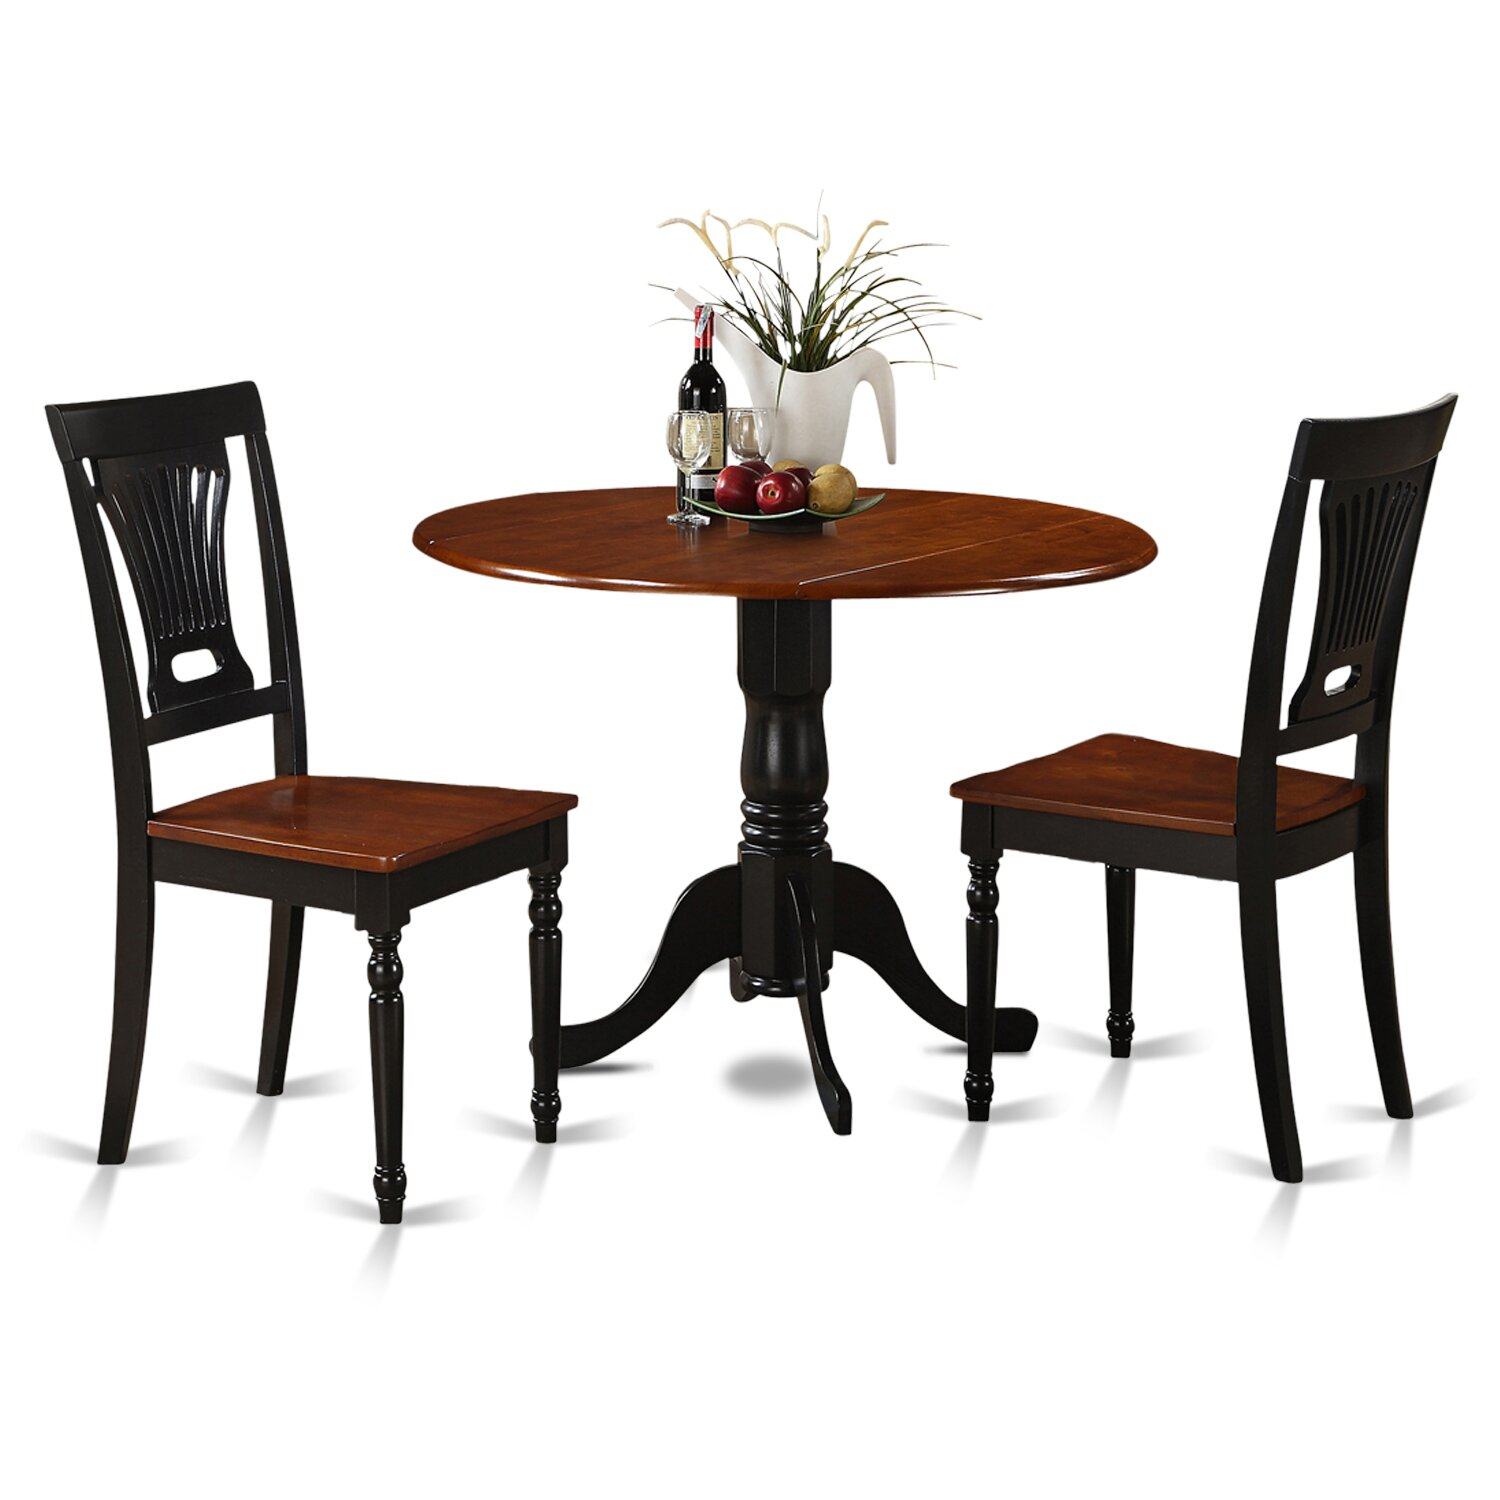 Wooden importers dublin 3 piece dining set reviews wayfair for Small dining table and bench set